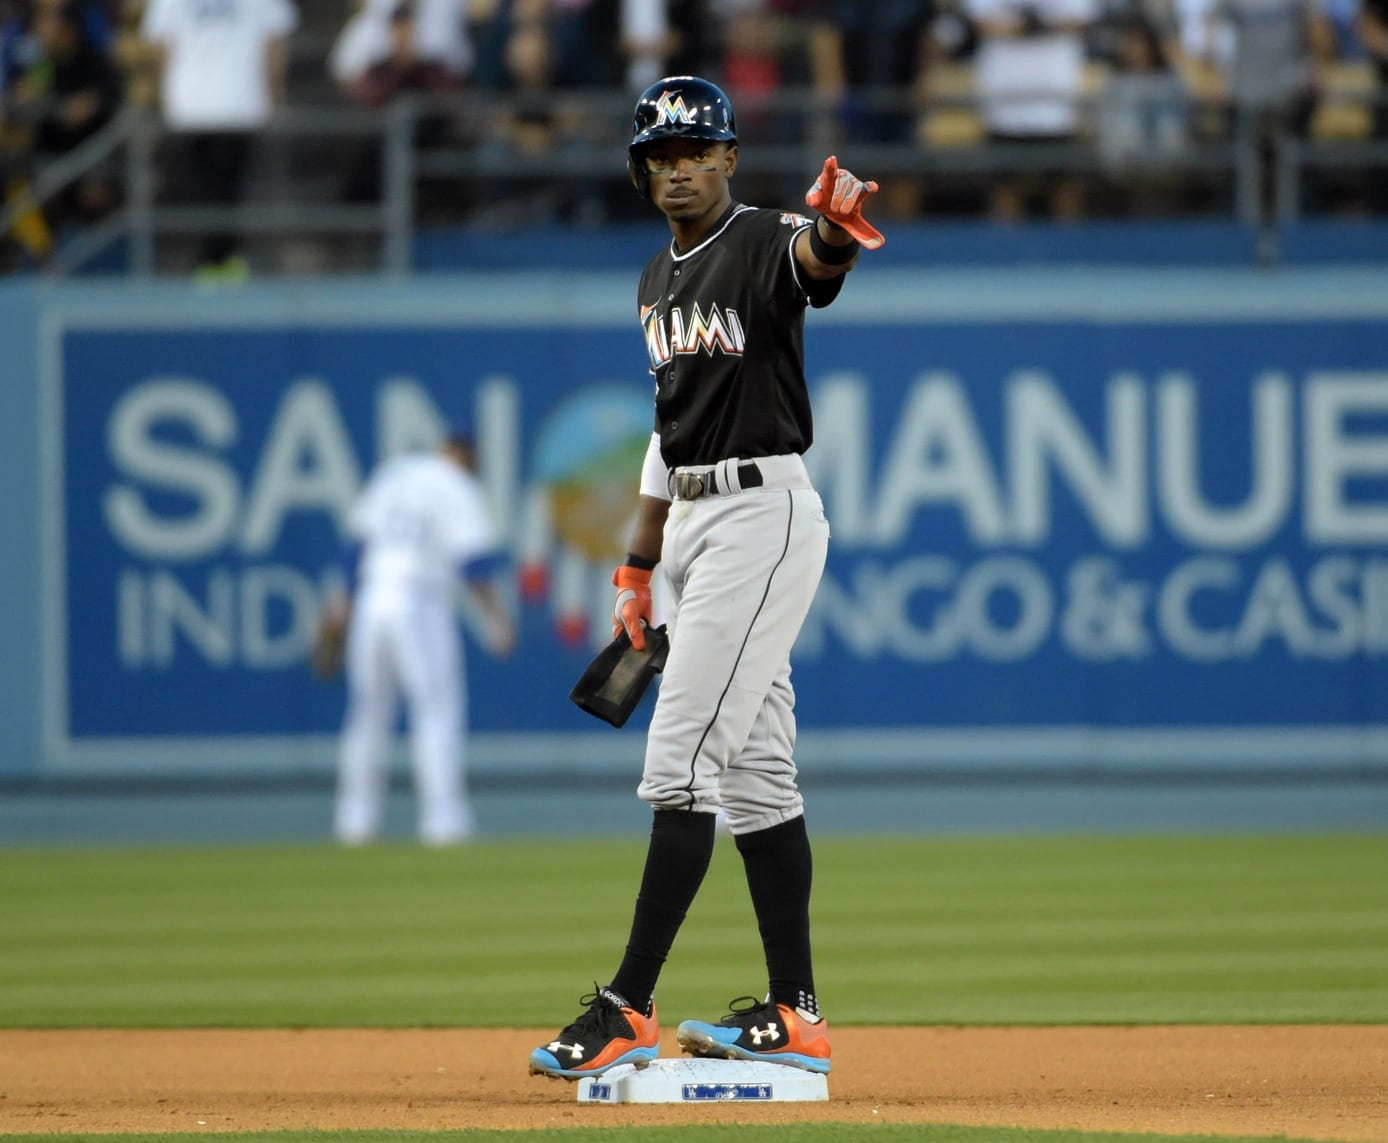 Dodgers News: Farhan Zaidi Praises Dee Gordon's 2015 Season